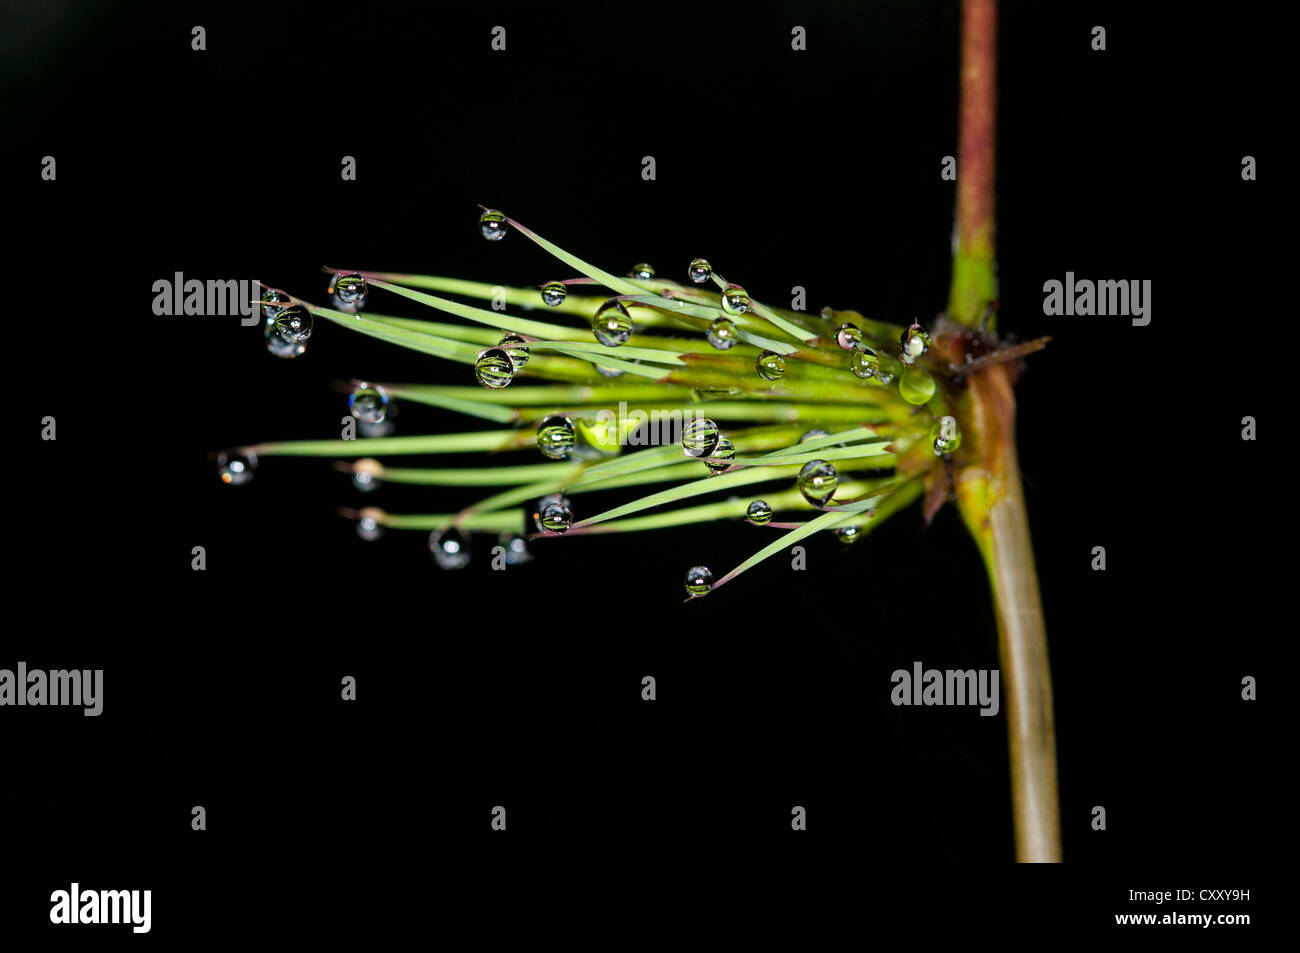 Horsetail, snake grass or puzzlegrass (Equisetales) with raindrops, Tandayapa region, Andean cloud forest, Ecuador Stock Photo